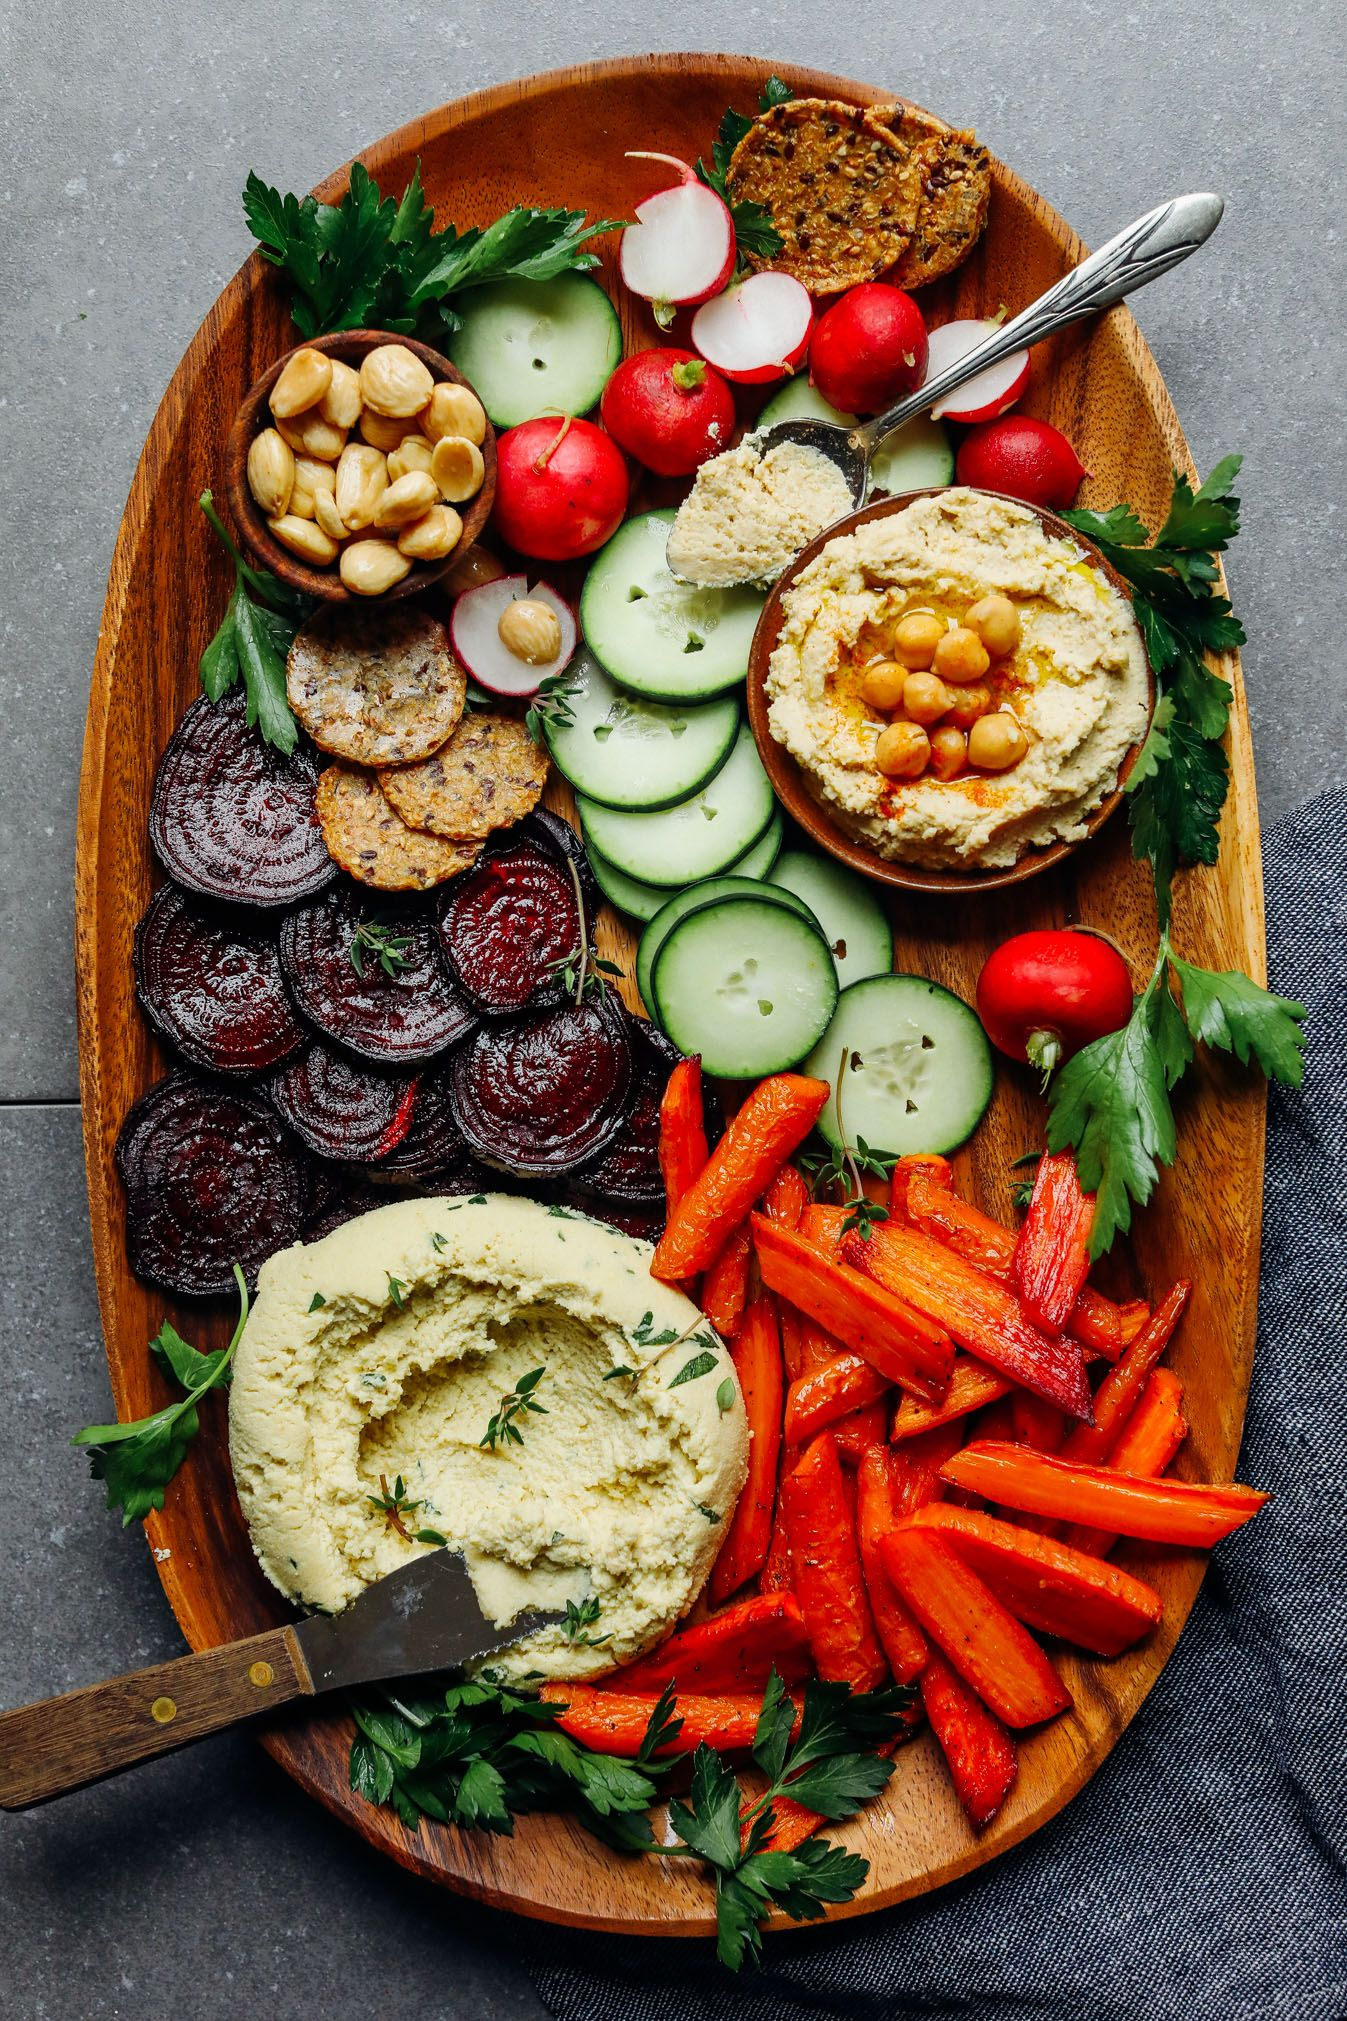 Macadamia Nut Cheese and Vegan Crudité | Minimalist Baker Recipes